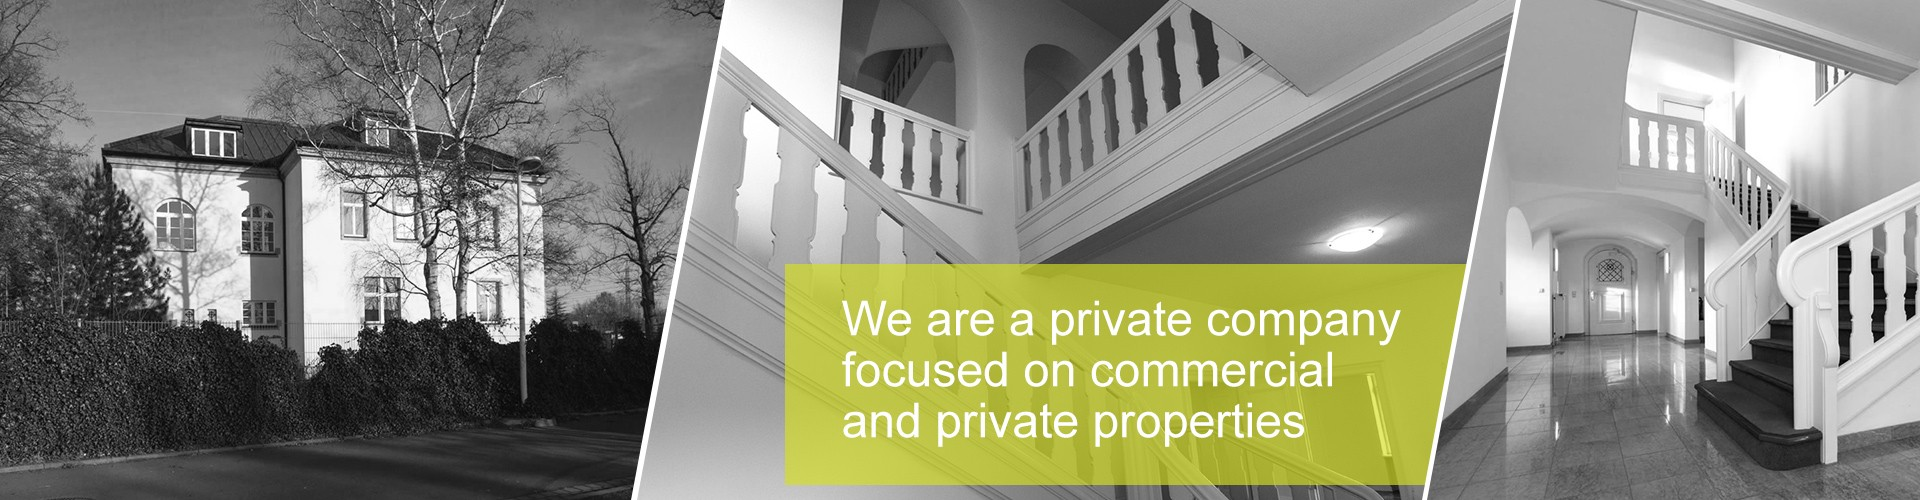 Arzumanidis Investments is a private company focused on commercial and private real estate